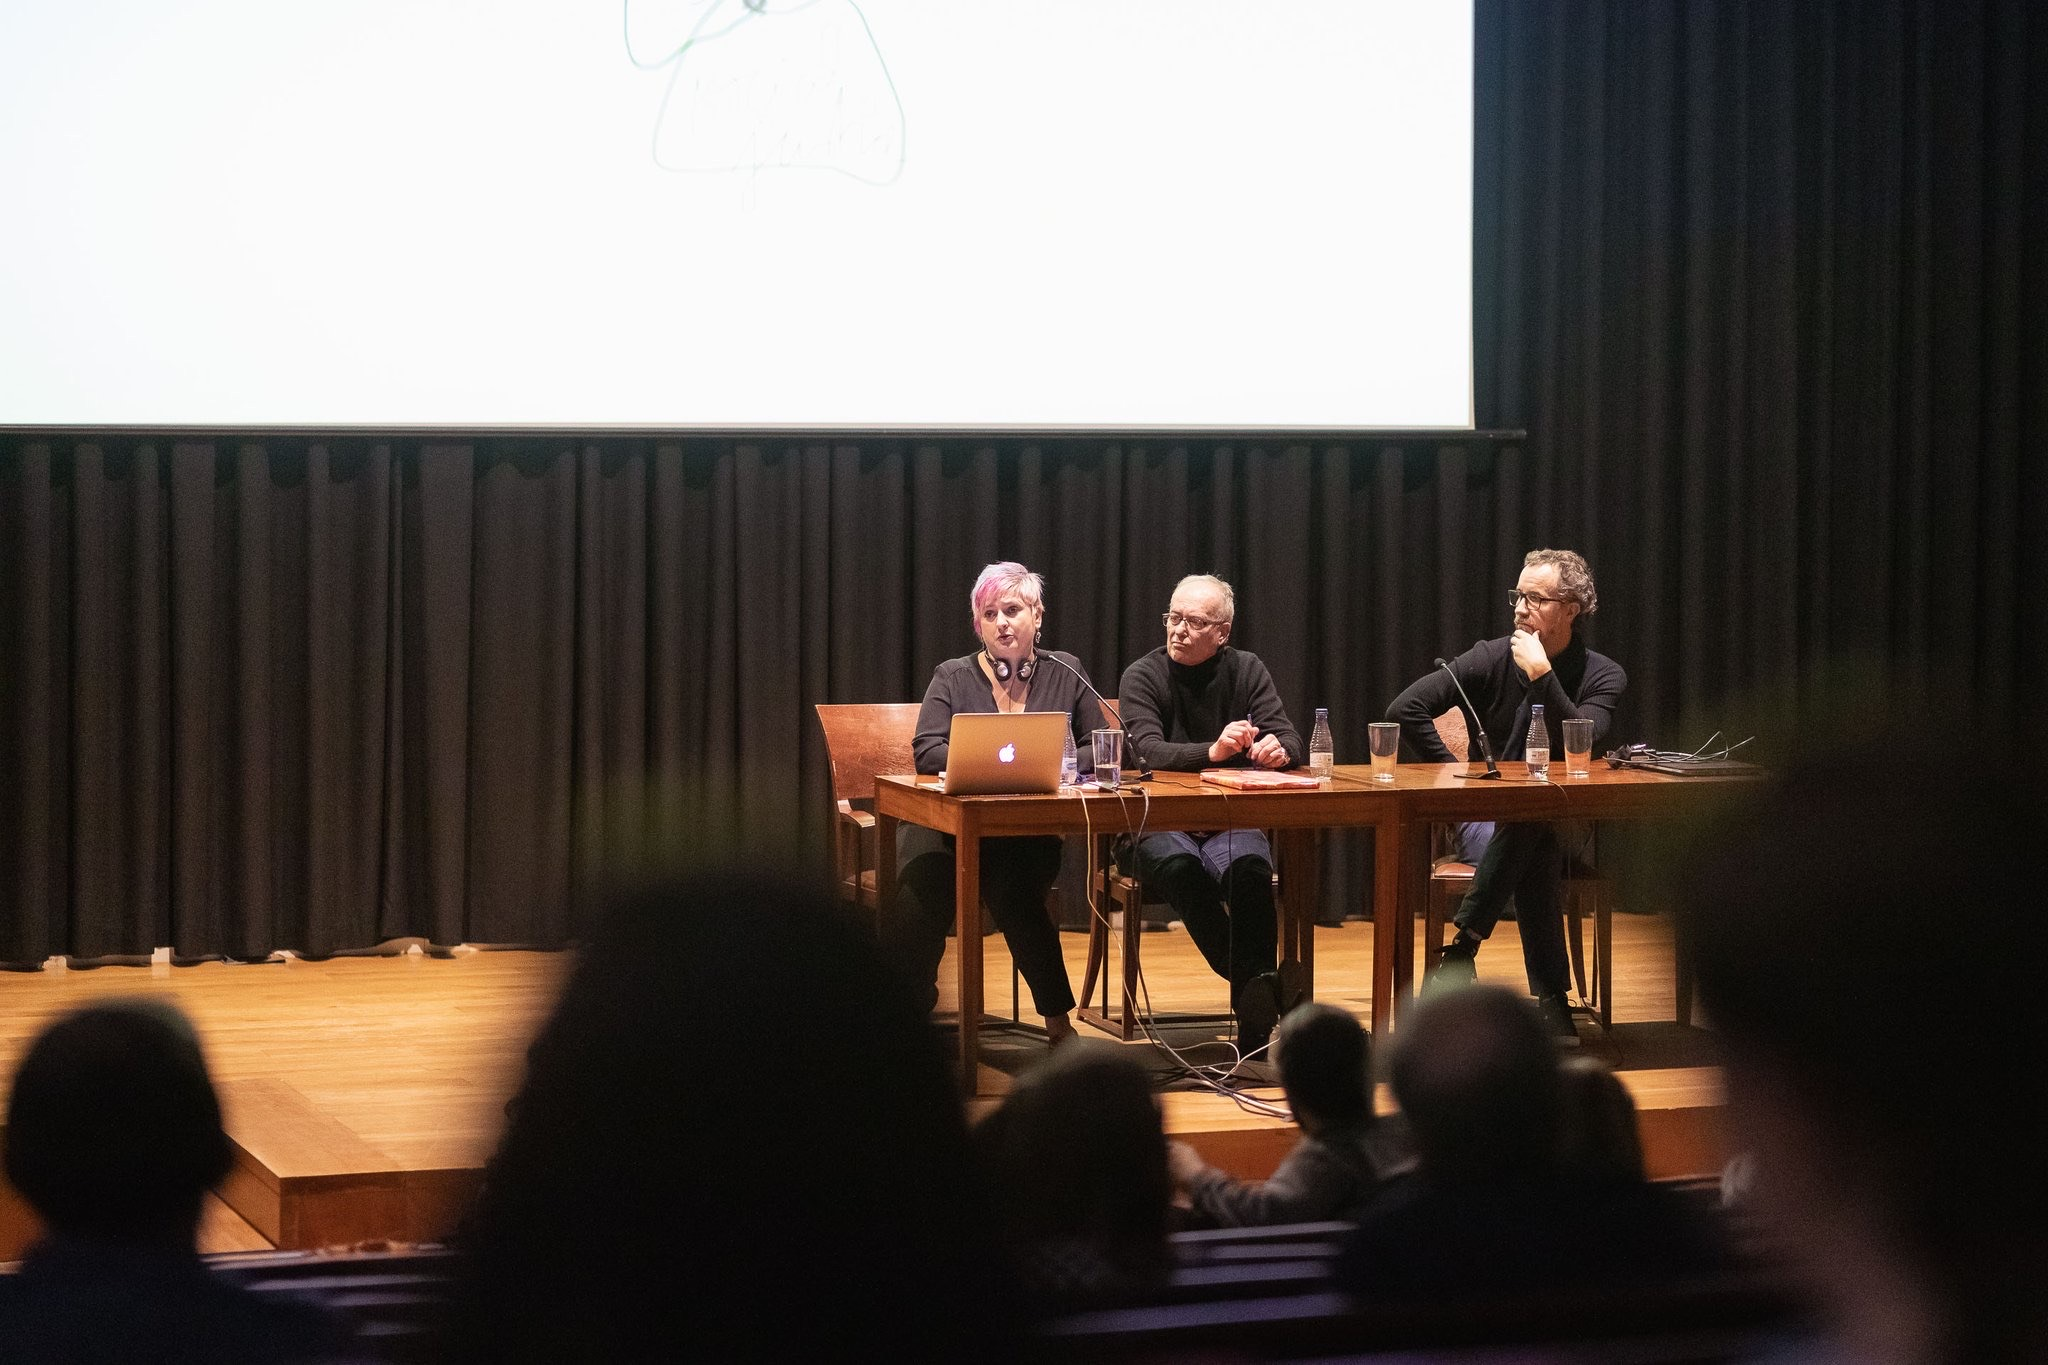 Museum Talk and Panel